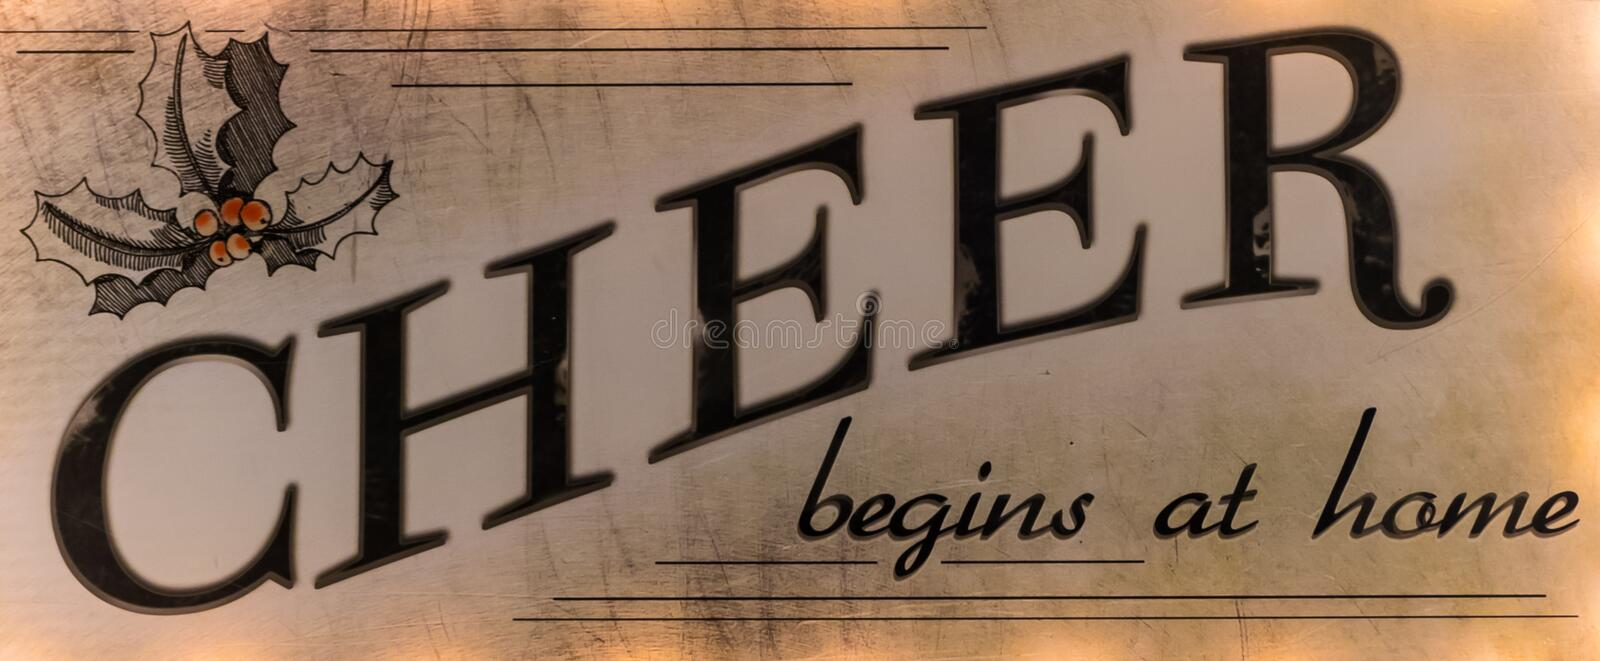 Cheer Begins at Home- a proverb that is often forgotten stock image